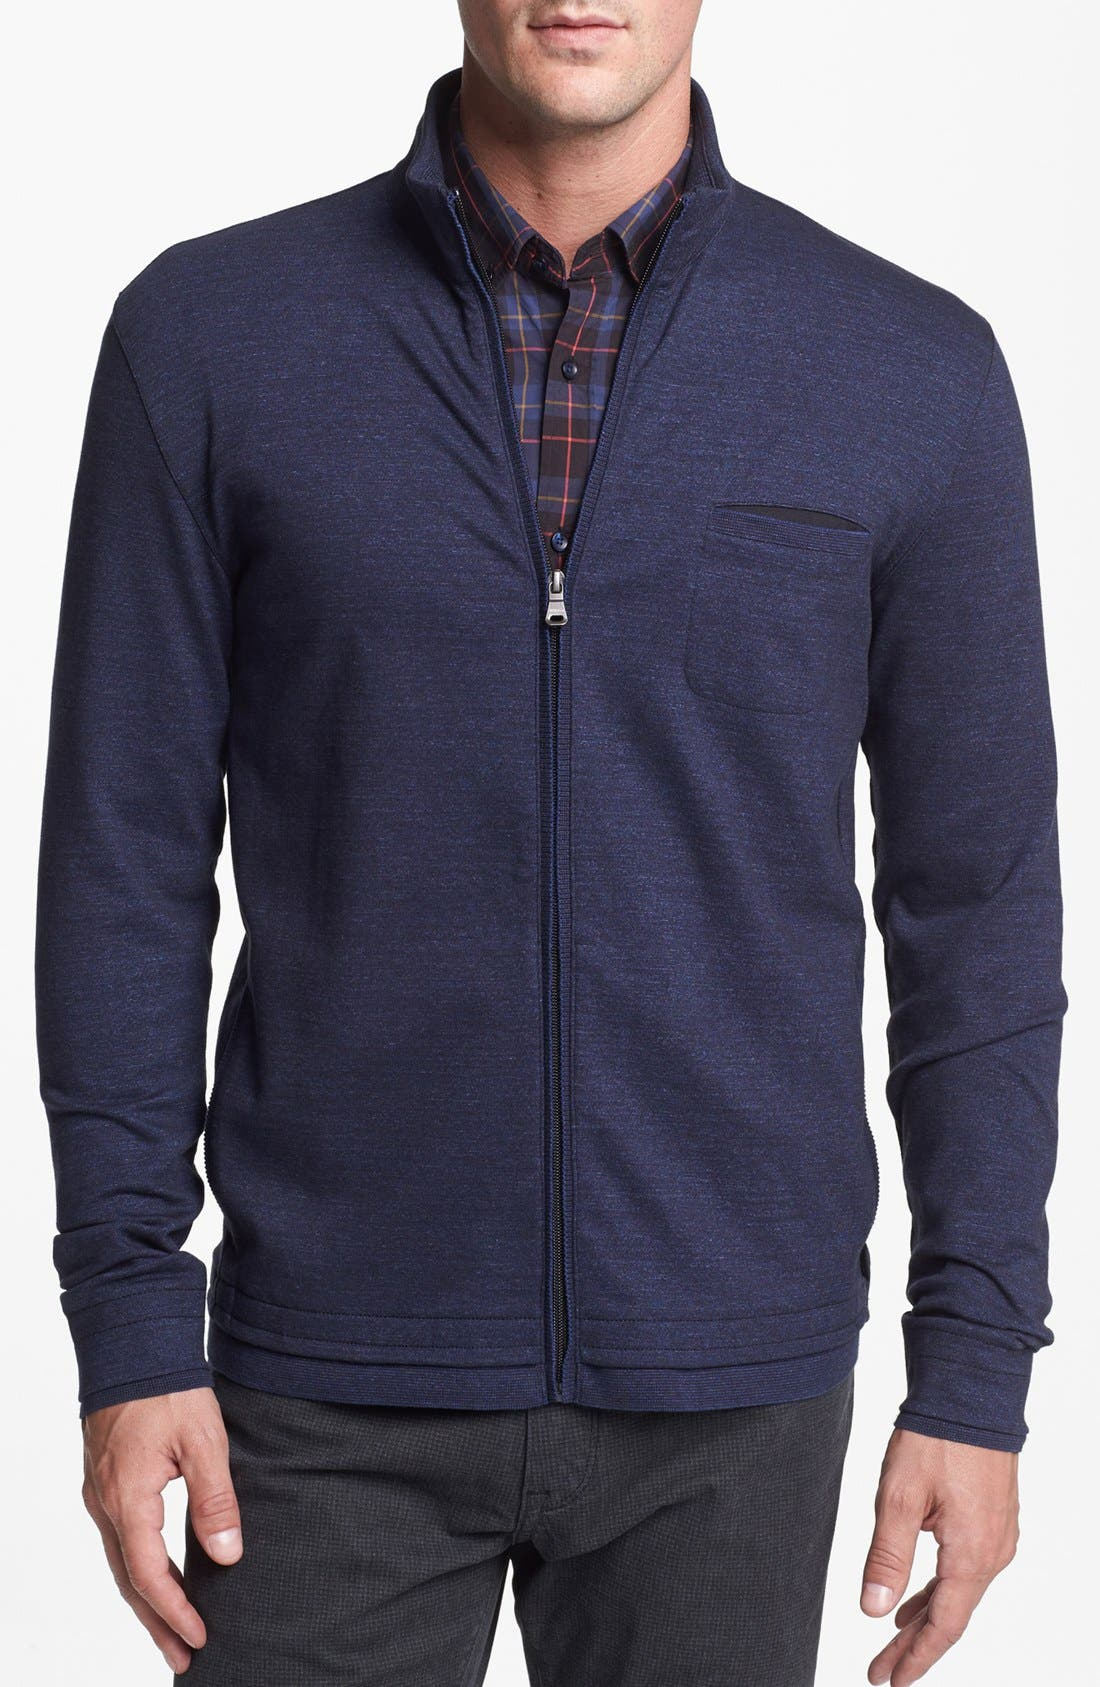 Main Image - BOSS HUGO BOSS 'Cannobio' Zip Front Sweatshirt